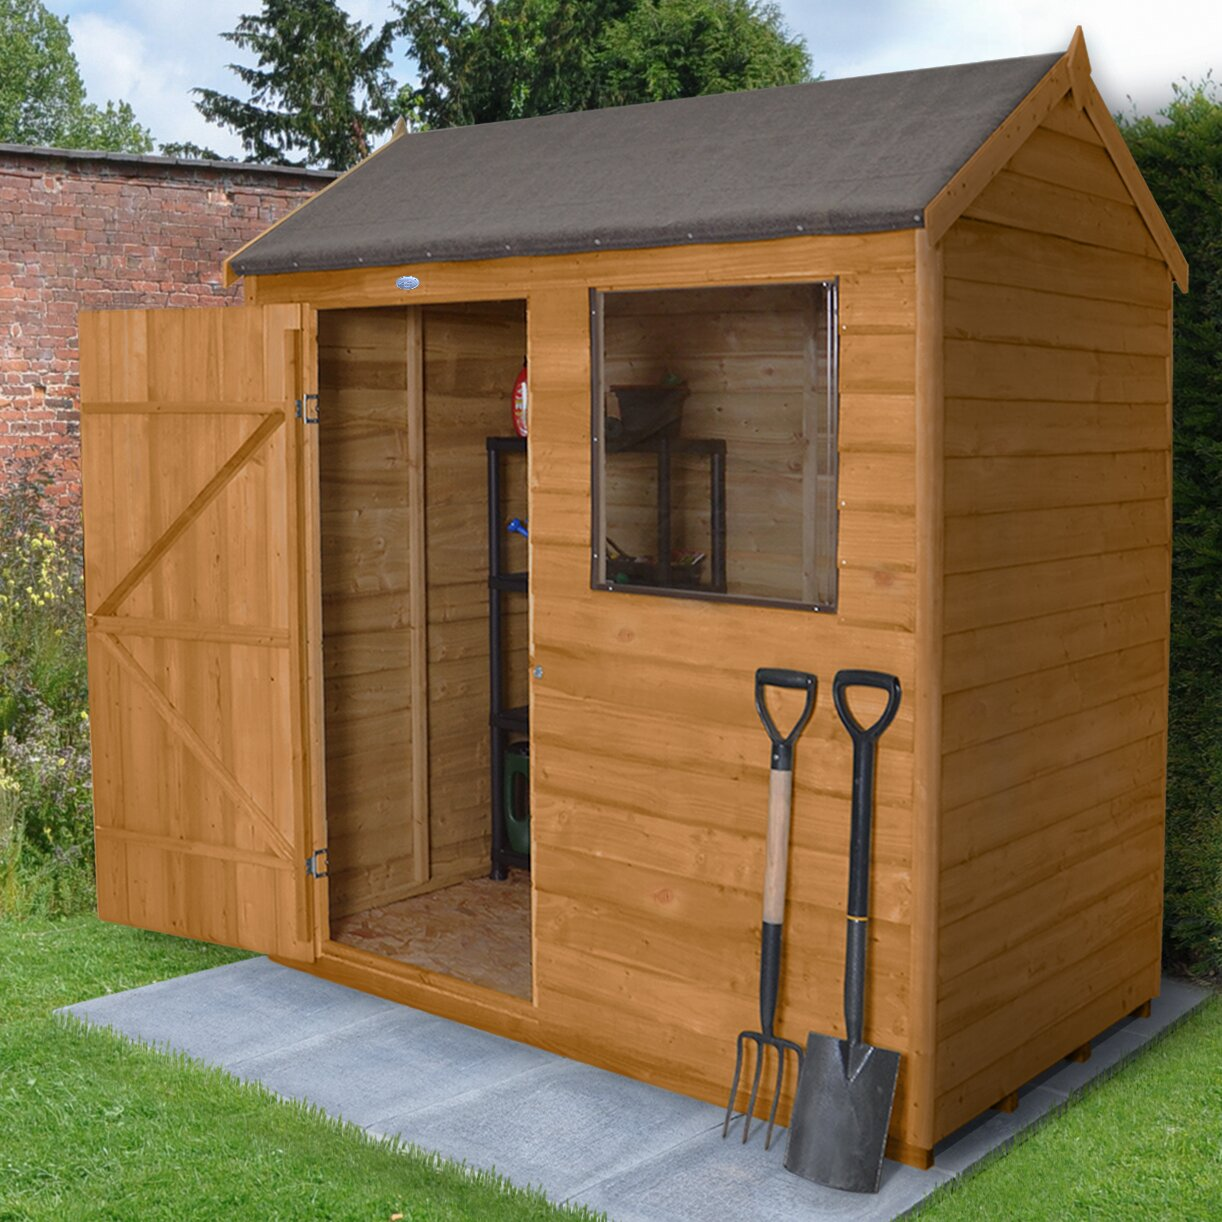 Forest garden 6 x 4 wooden storage shed reviews wayfair uk for Garden shed 6 x 4